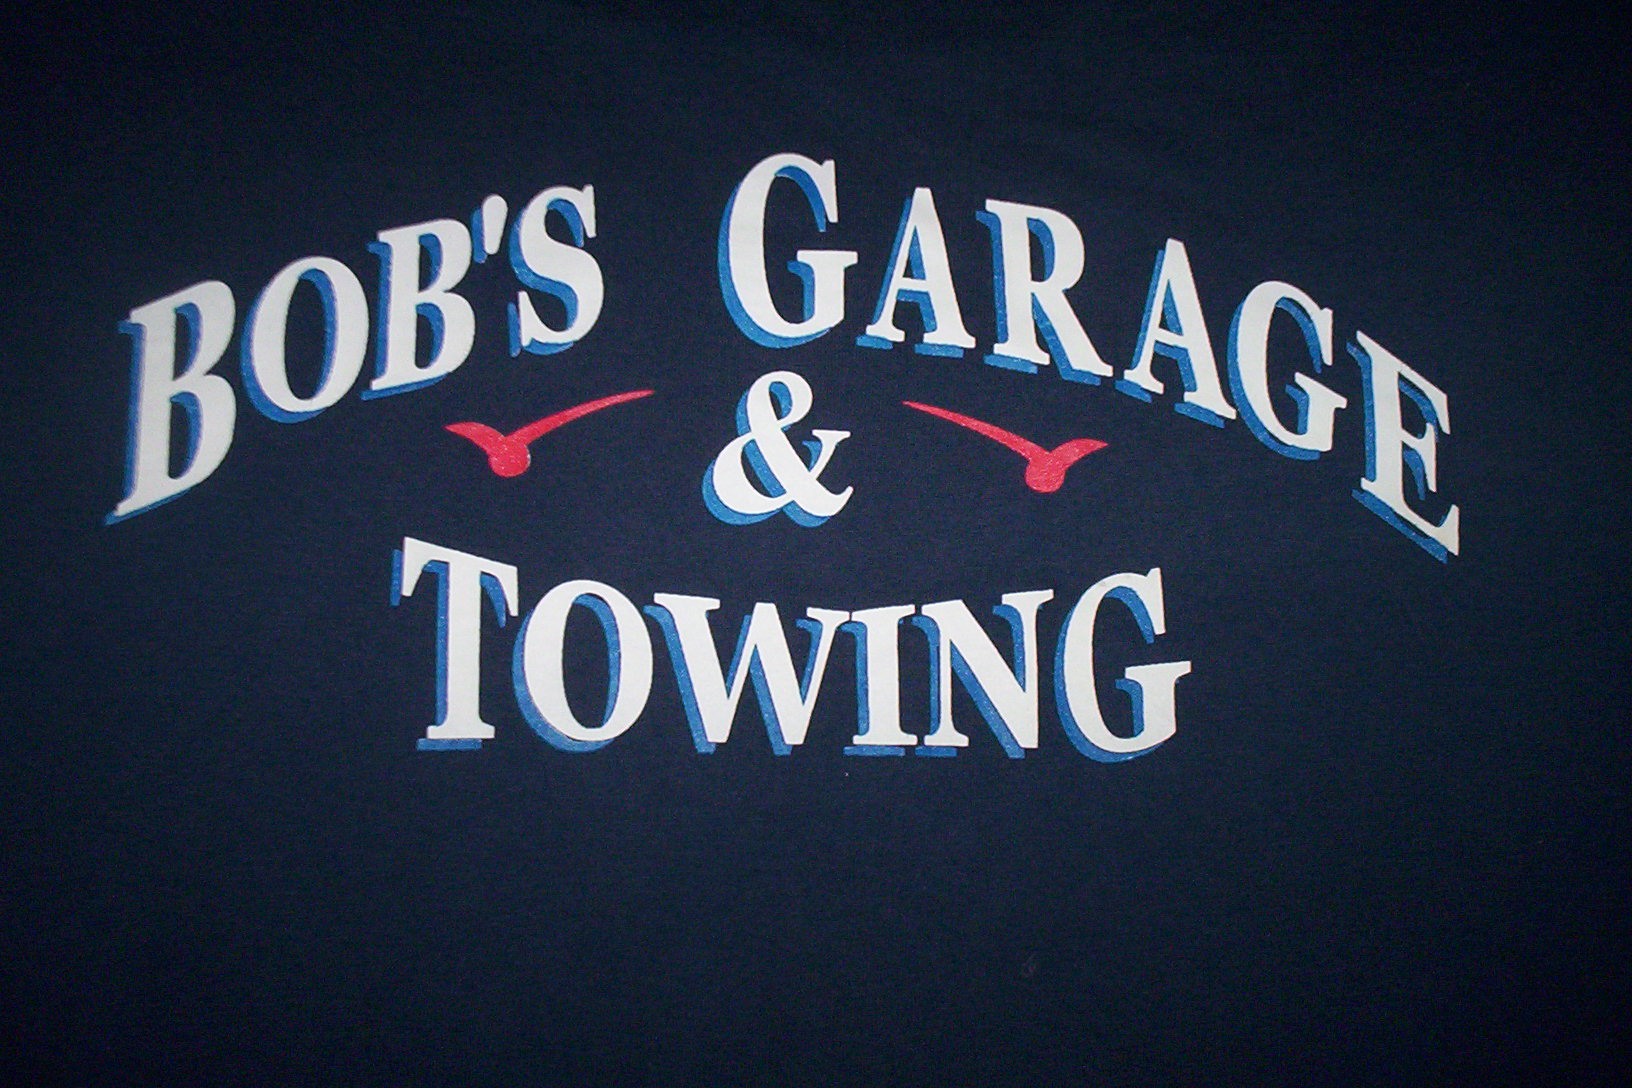 Bob's Garage & Towing